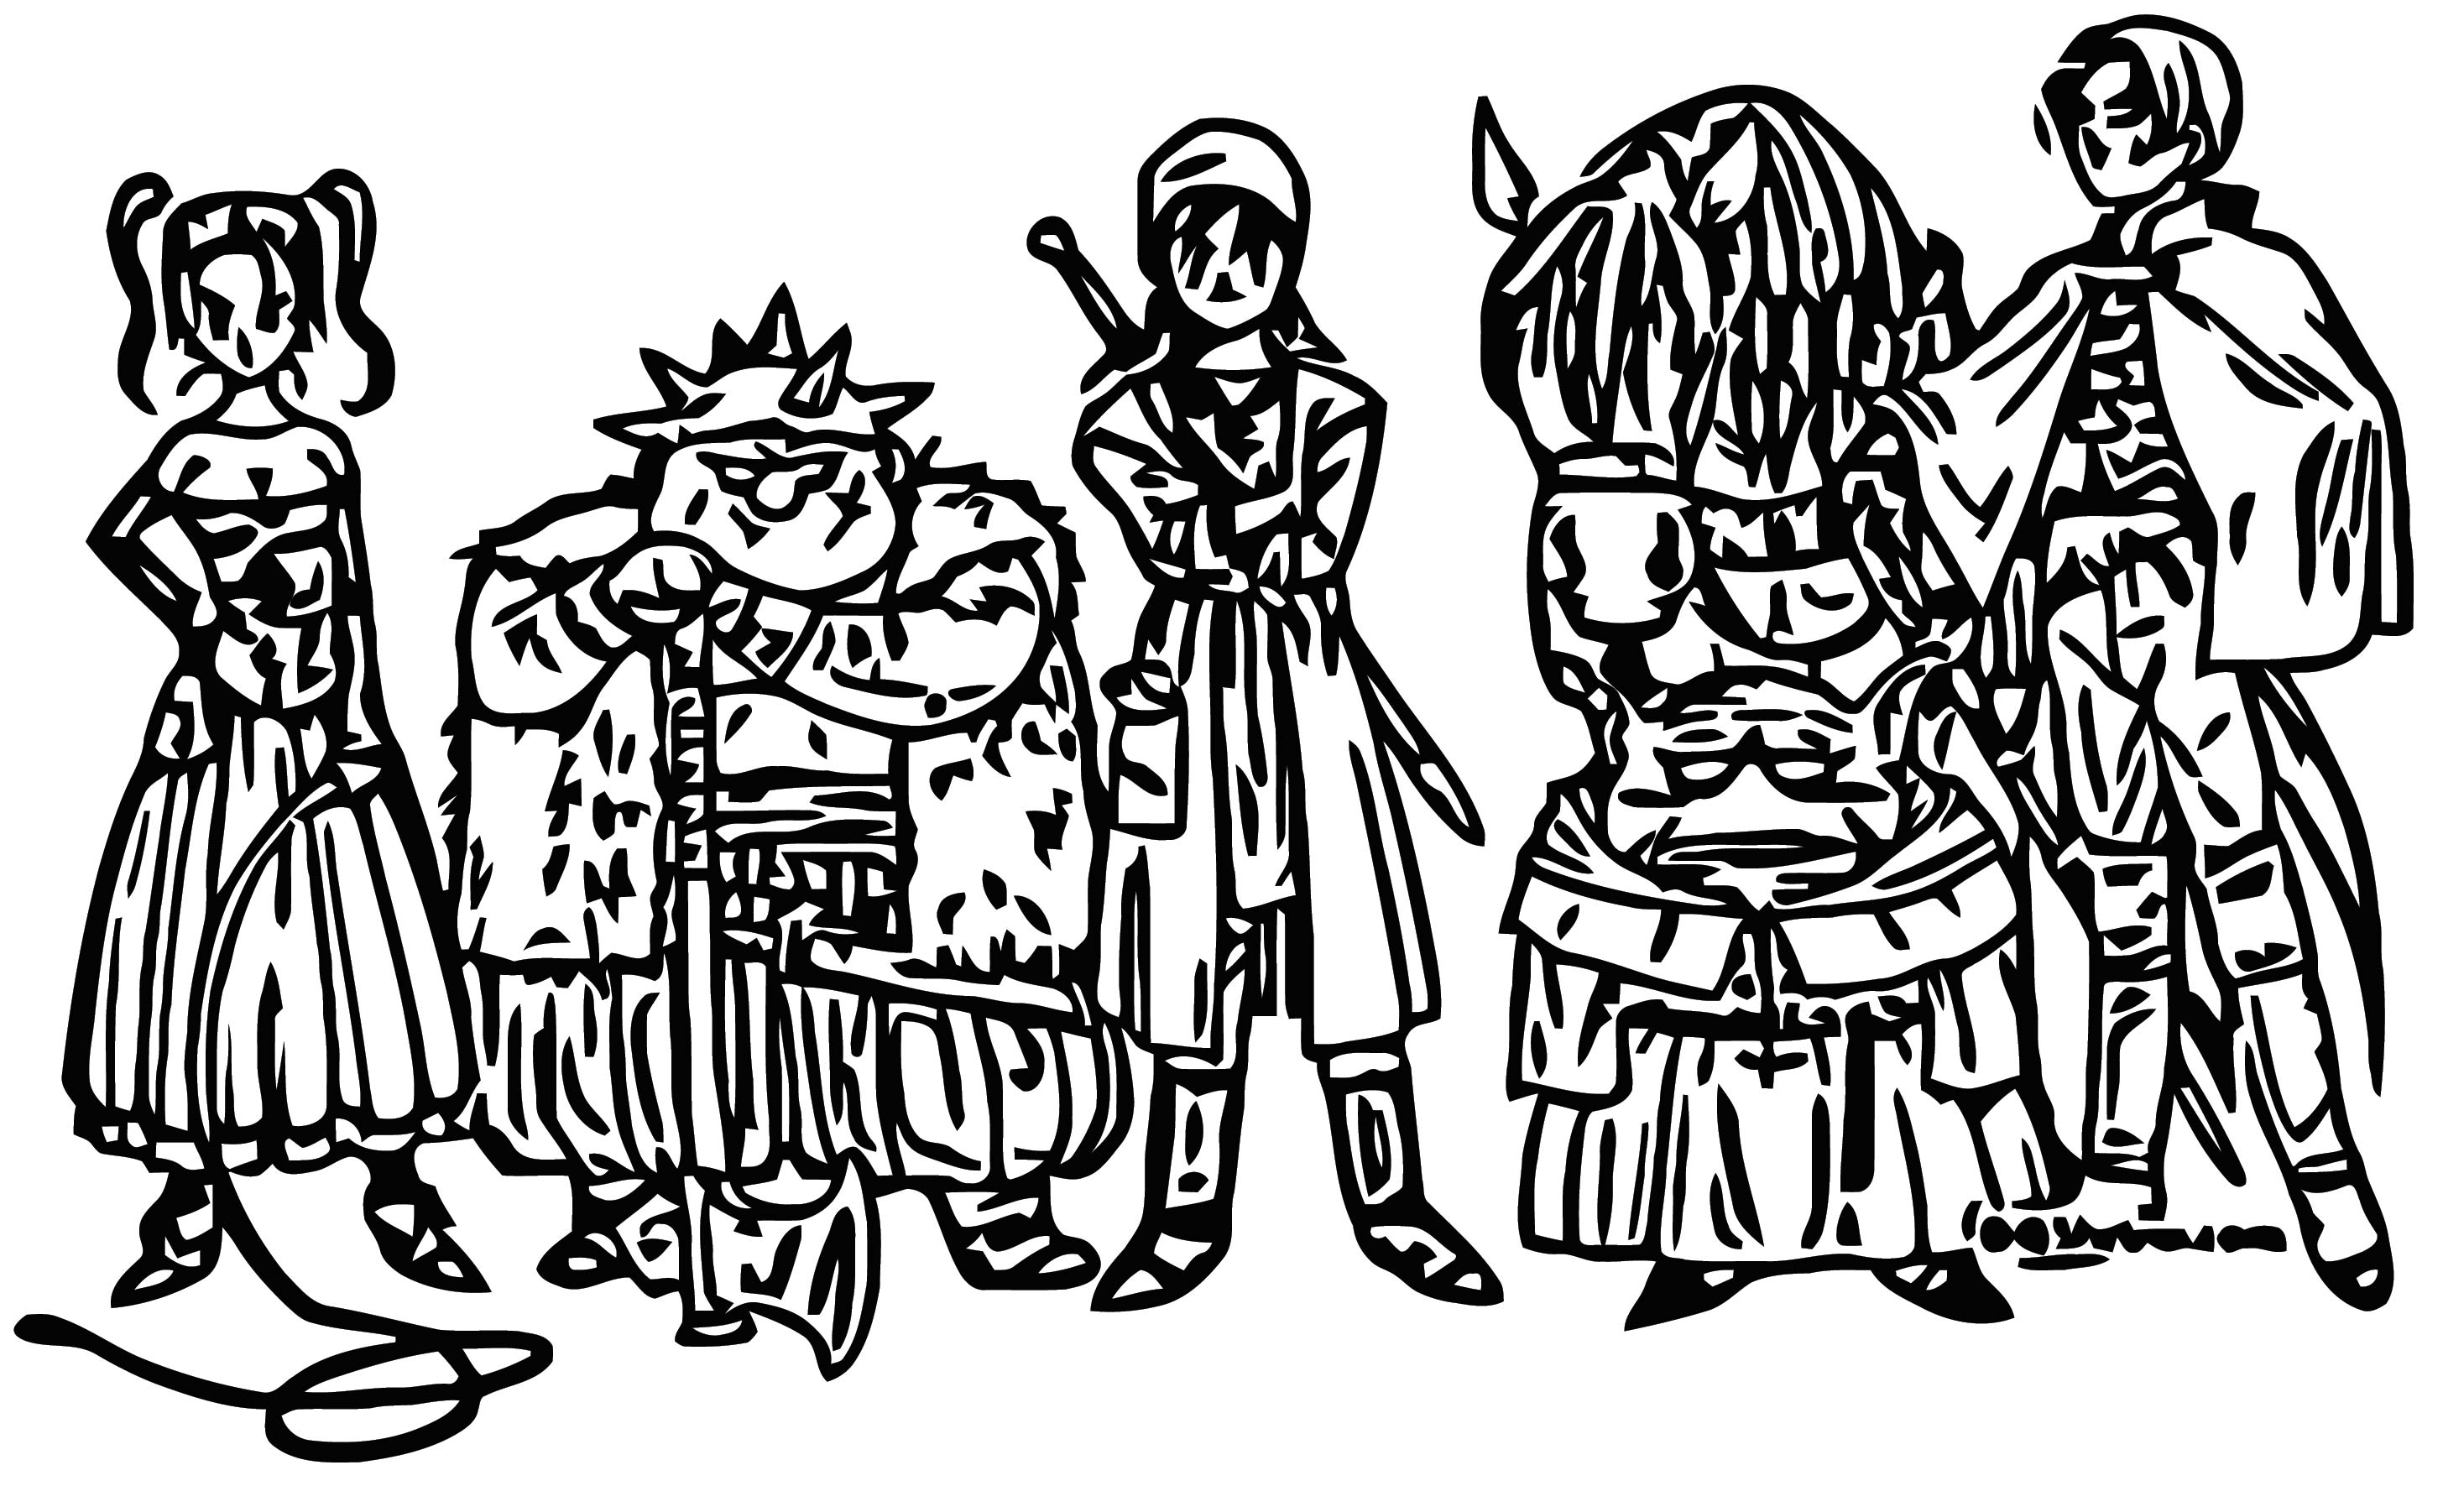 Dragon Quest Viii Dragon Quest Viii 8045209 780 482 Cartoonize Coloring Page